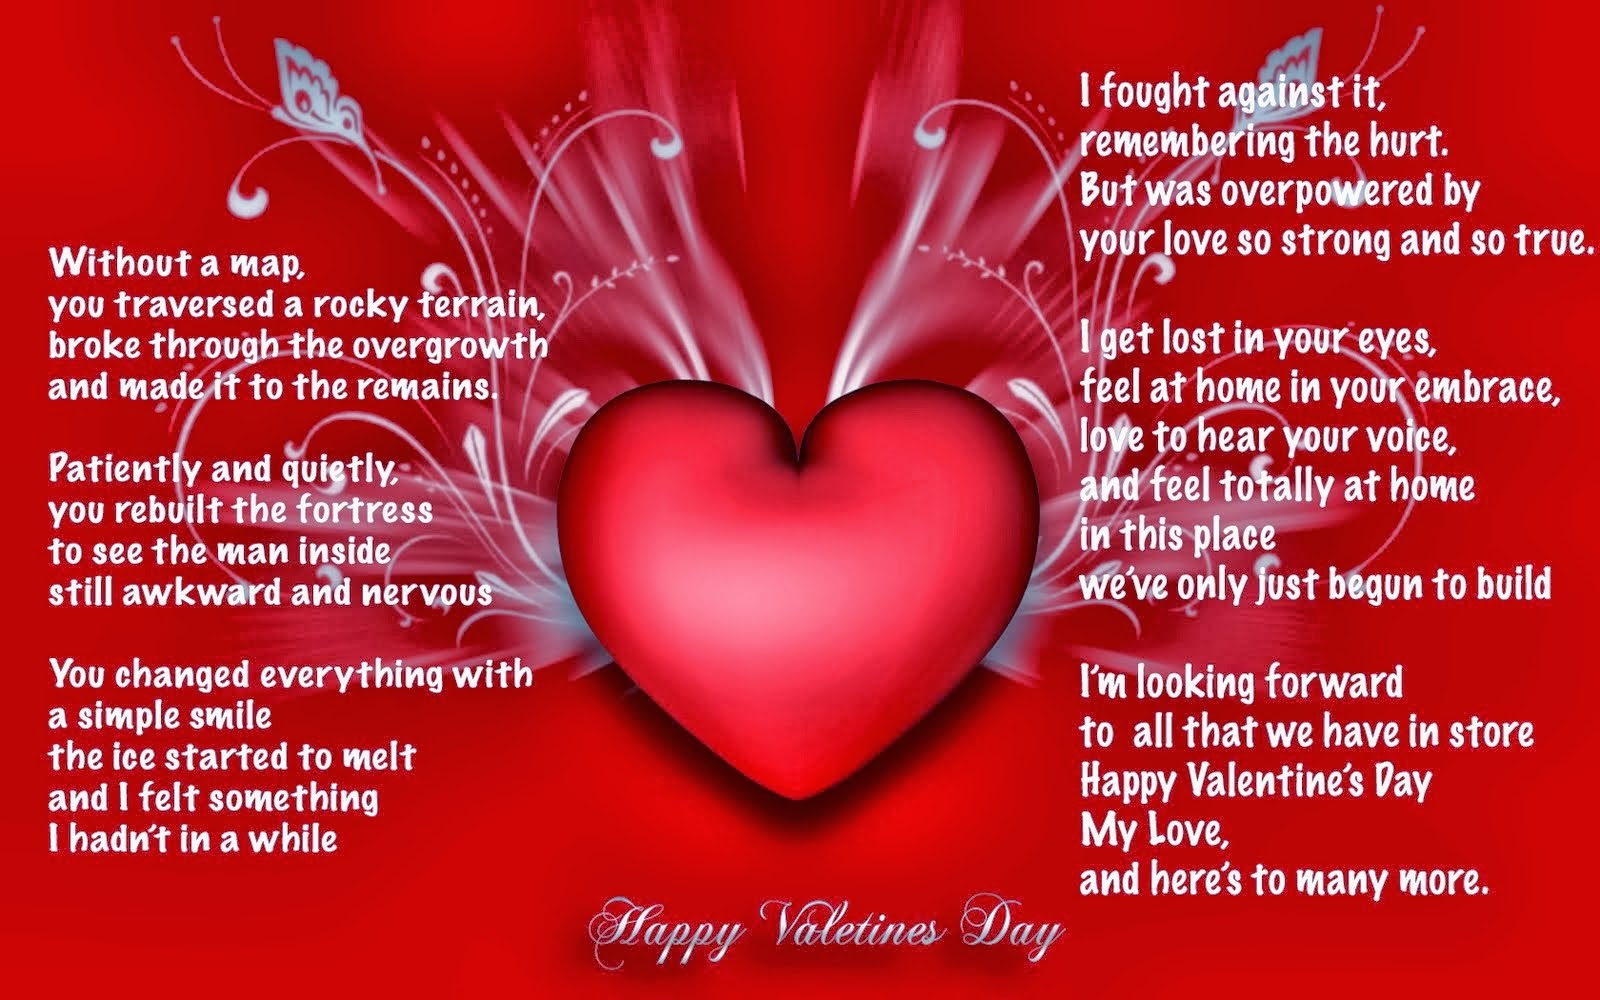 valentines day ecards - Valentines Day Messages For Girlfriend